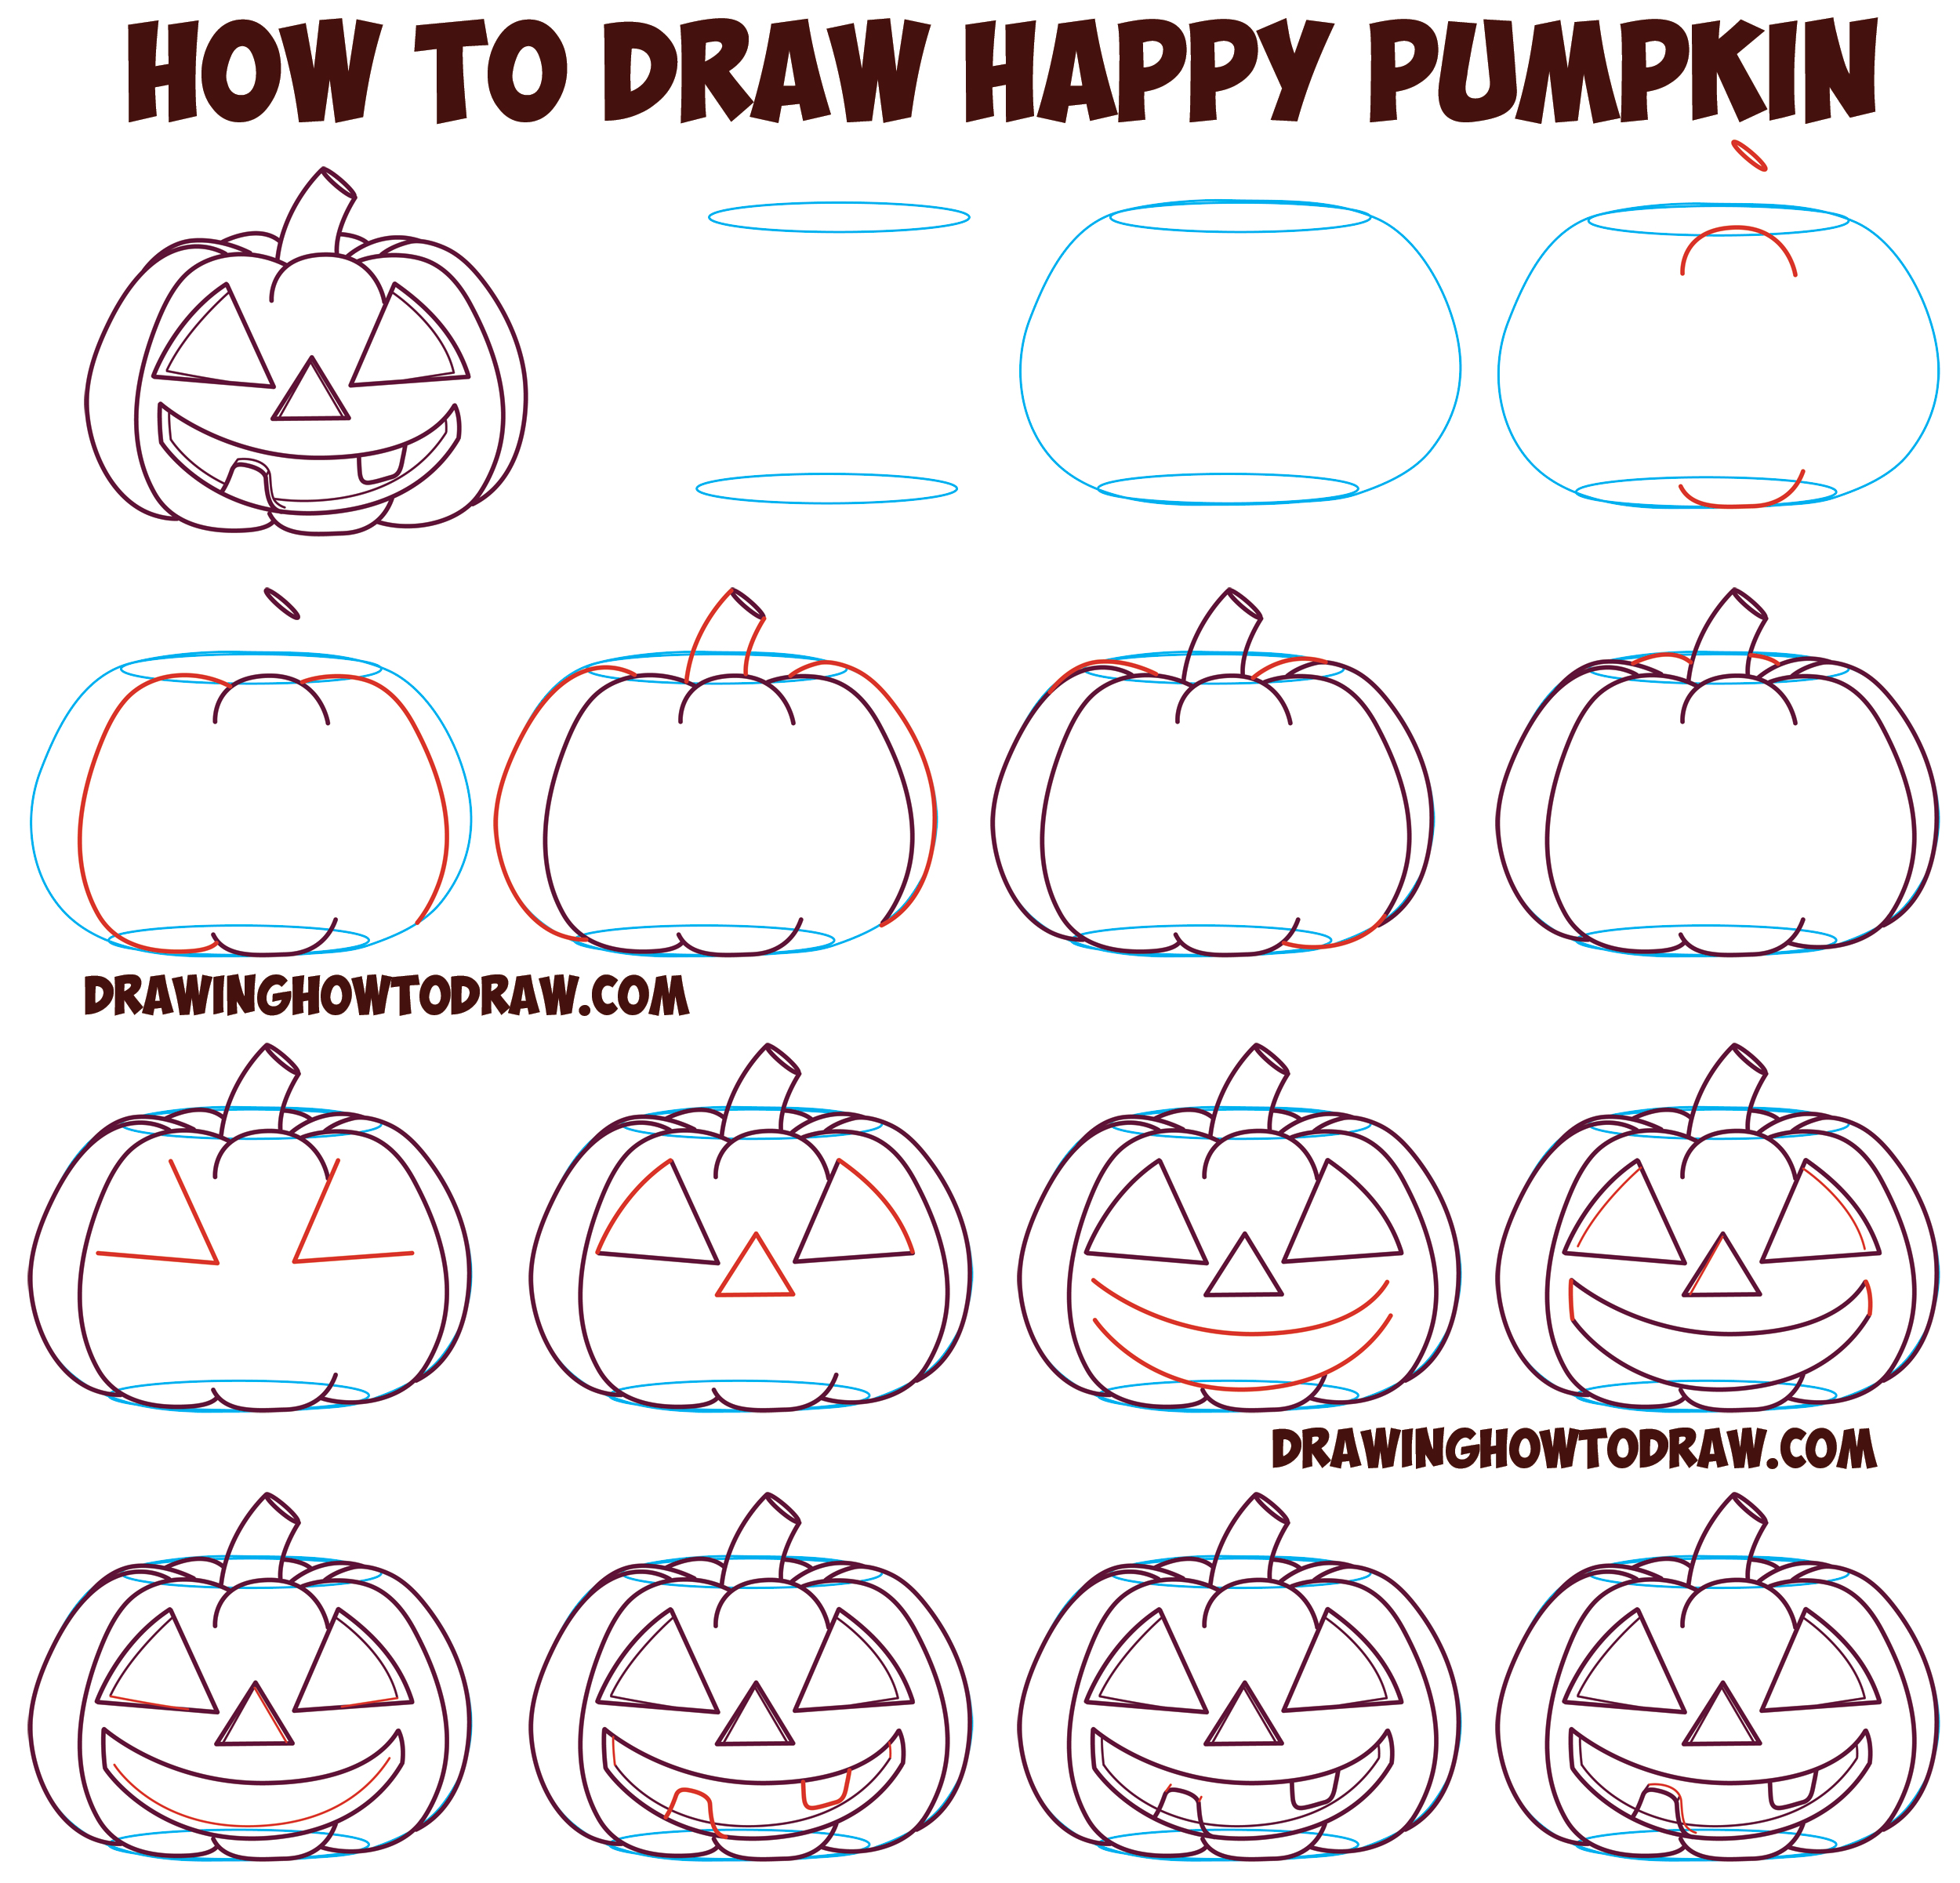 How to Draw Cartoon Pumpkin / Jack O'Lantern : Happy, Smiling with Teeth